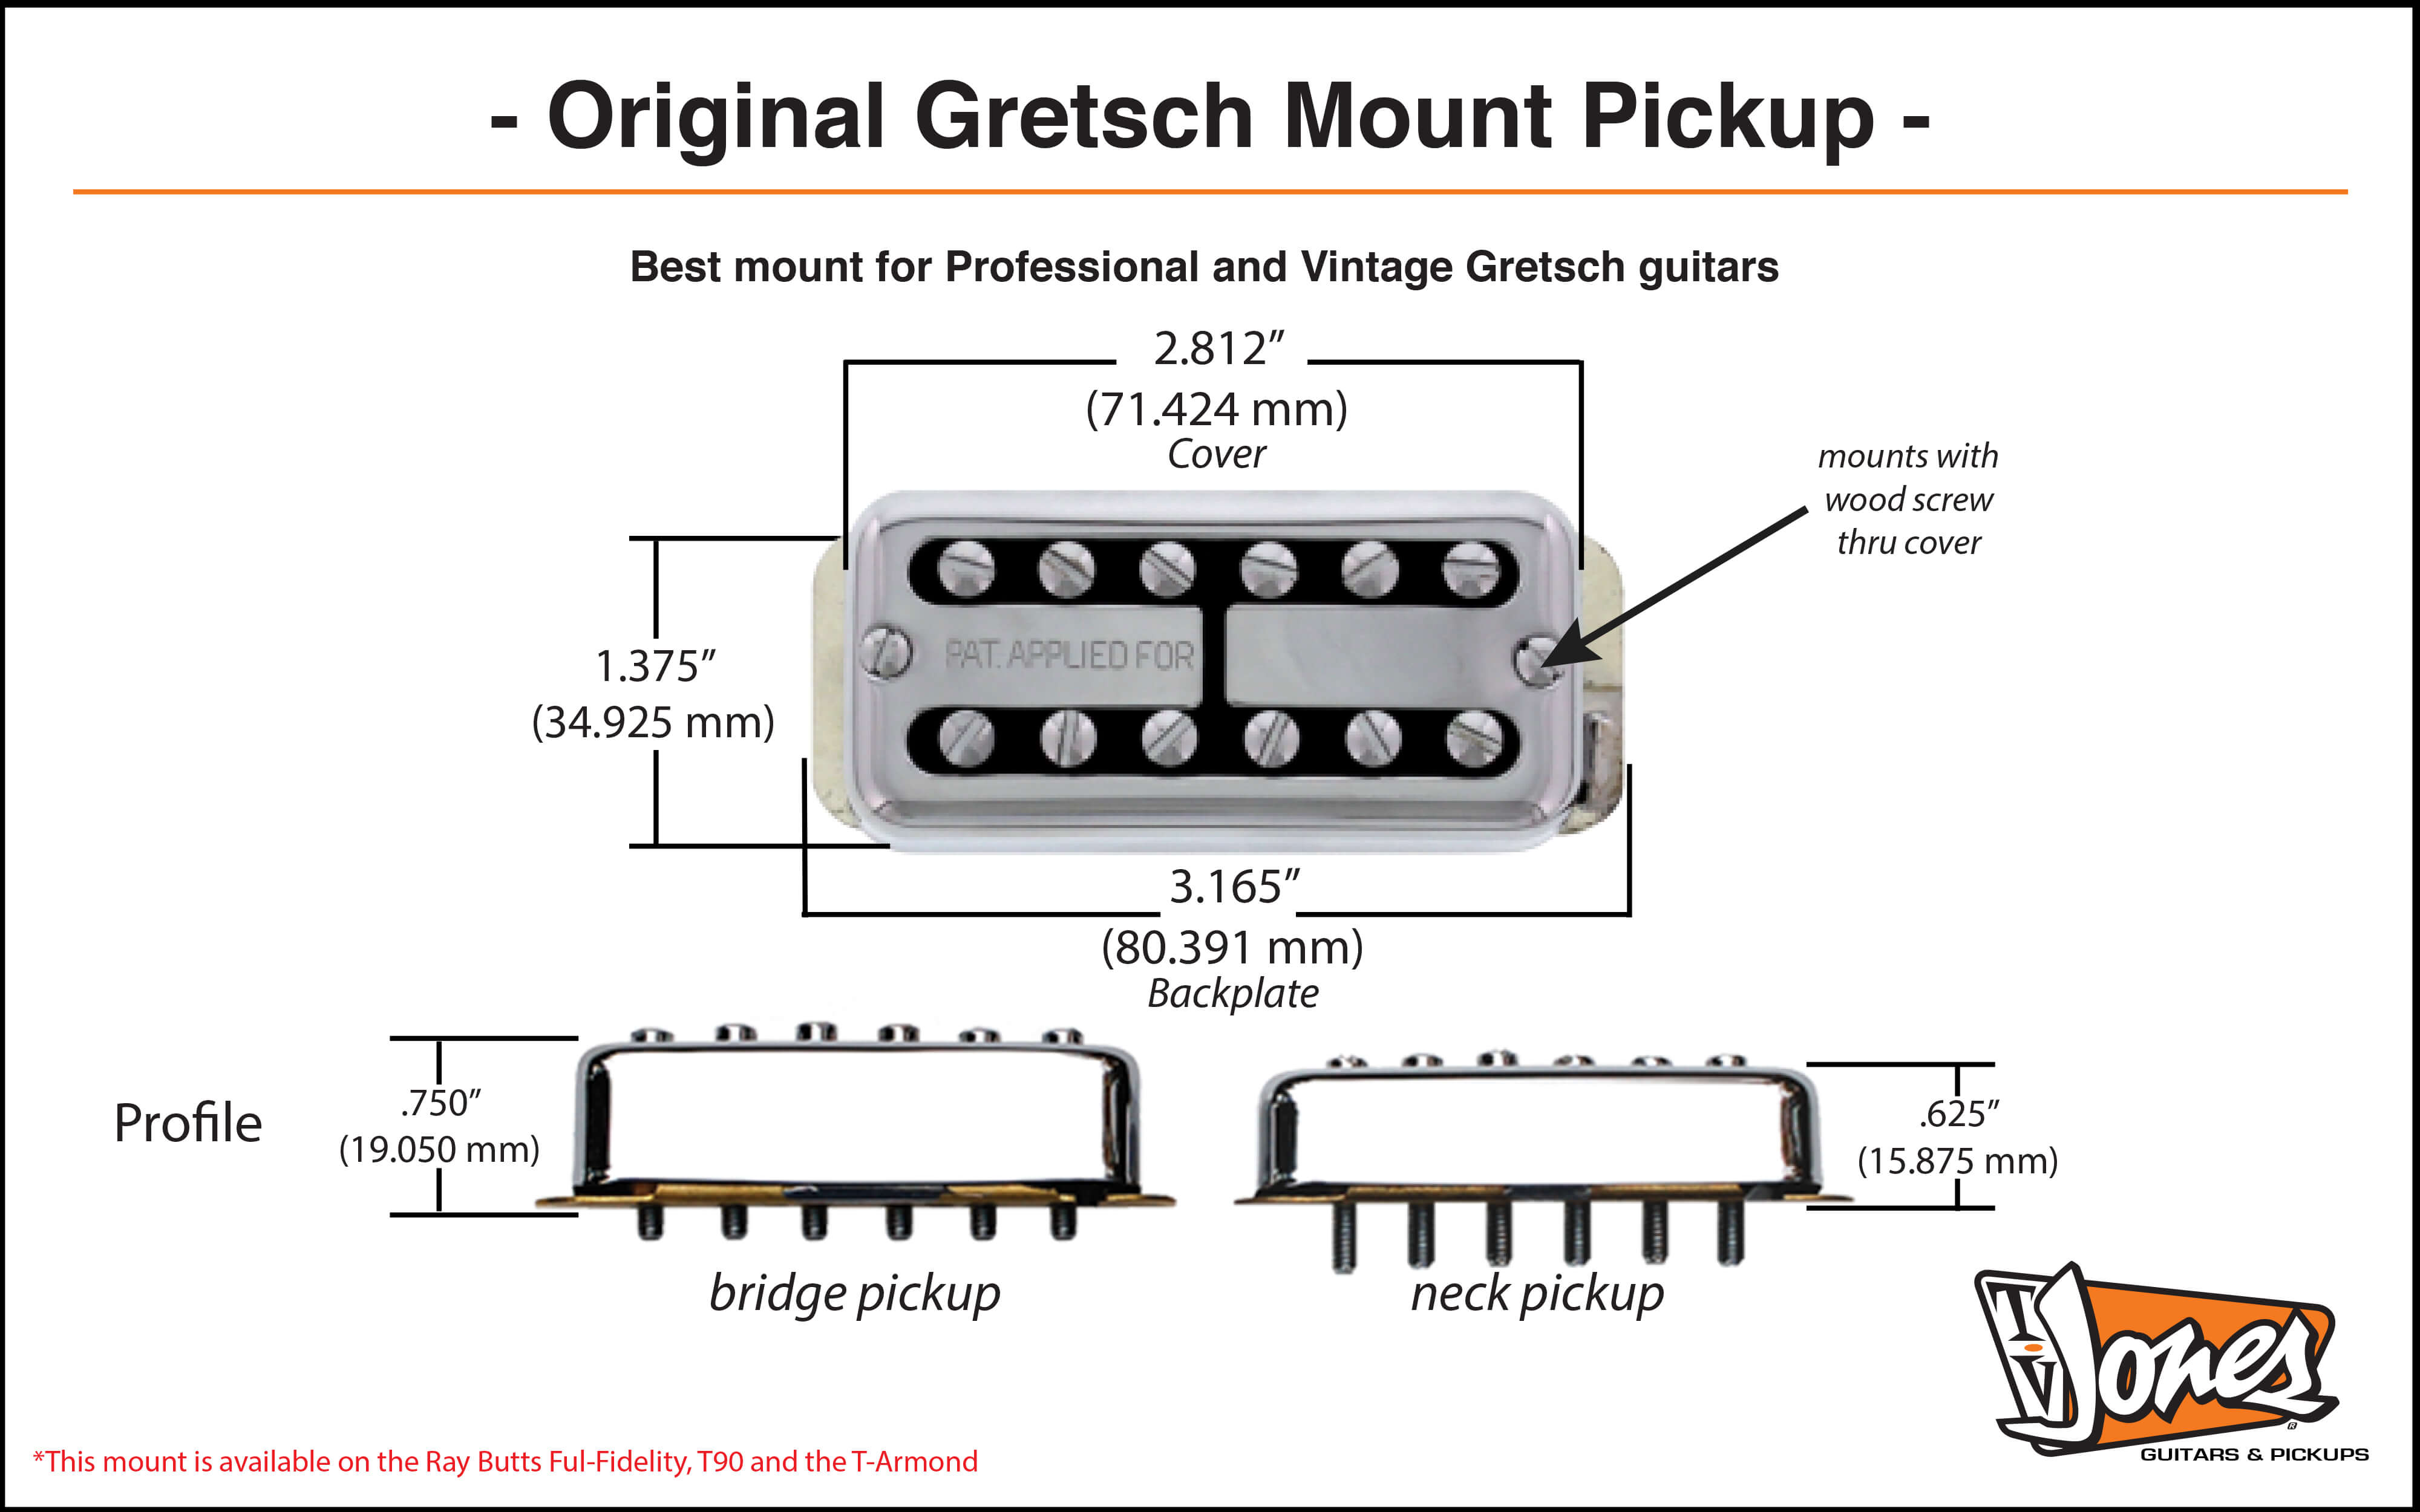 Original Gretsch Mount Dimensions